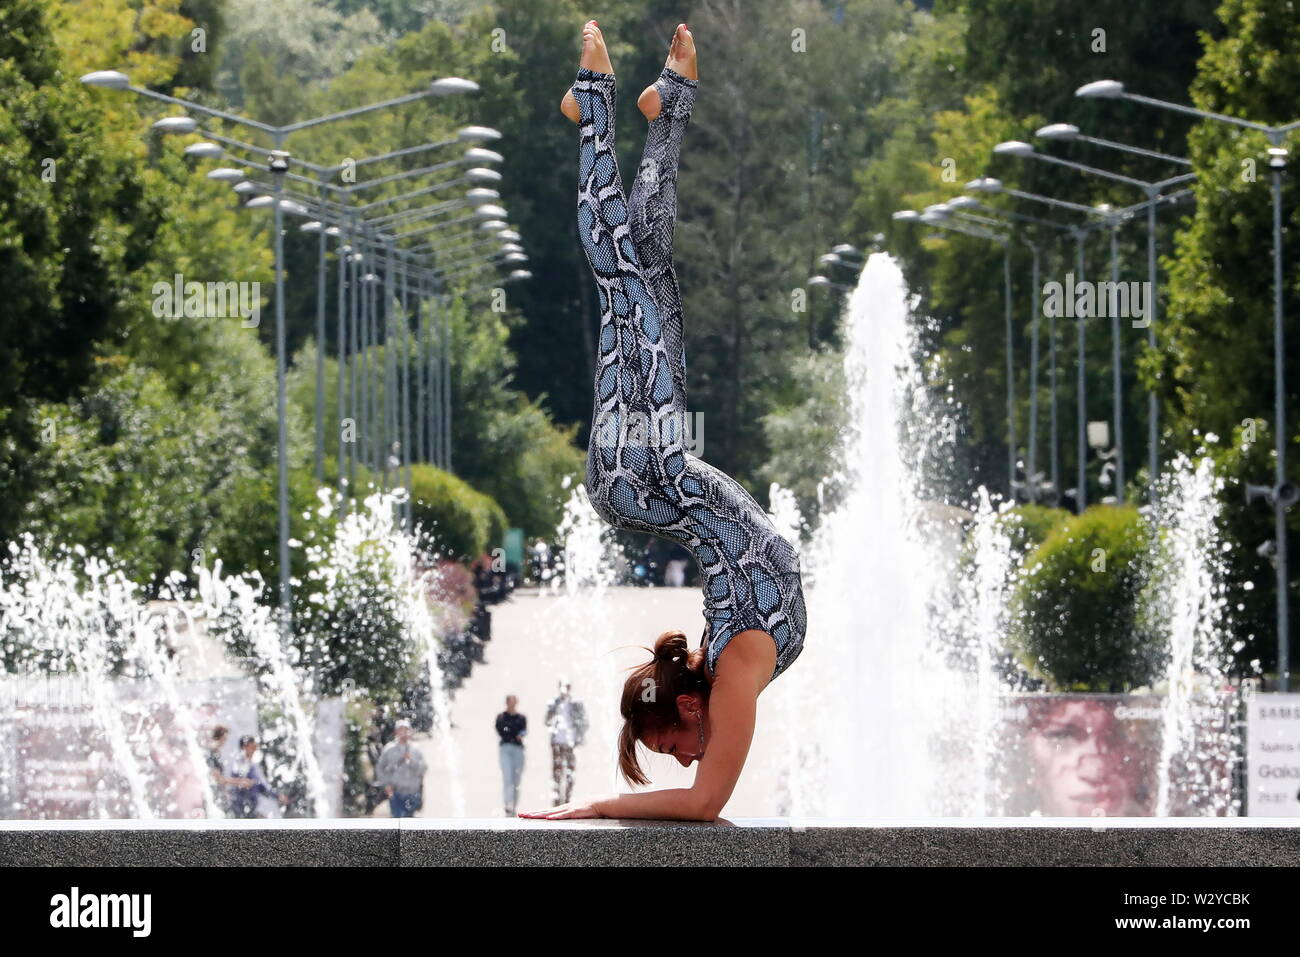 Moscow, Russia. 10th July, 2019. MOSCOW, RUSSIA - JULY 10, 2019: A girl doing yoga in Gorky Park. Anton Novoderezhkin/TASS Credit: ITAR-TASS News Agency/Alamy Live News Stock Photo